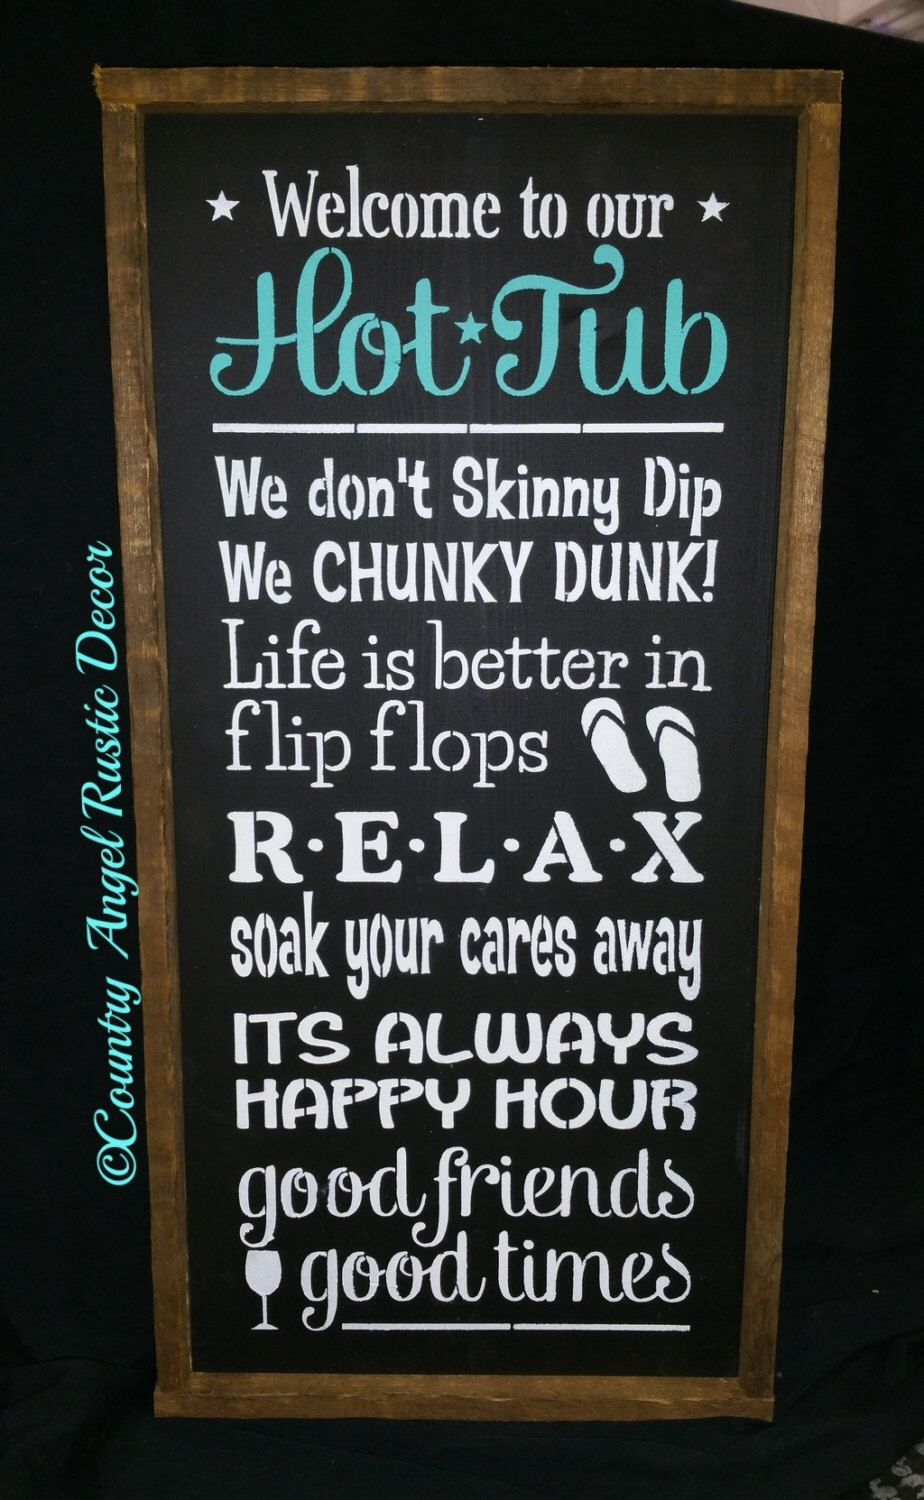 """Welcome to the HOT TUB ,Rustic wood sign 12""""x24"""", Hot tub rules sign, Outdoor Sign, Deck Sign, Backyard Sign by CountryAngelRustic on Etsy https://www.etsy.com/listing/399118599/welcome-to-the-hot-tub-rustic-wood-sign"""